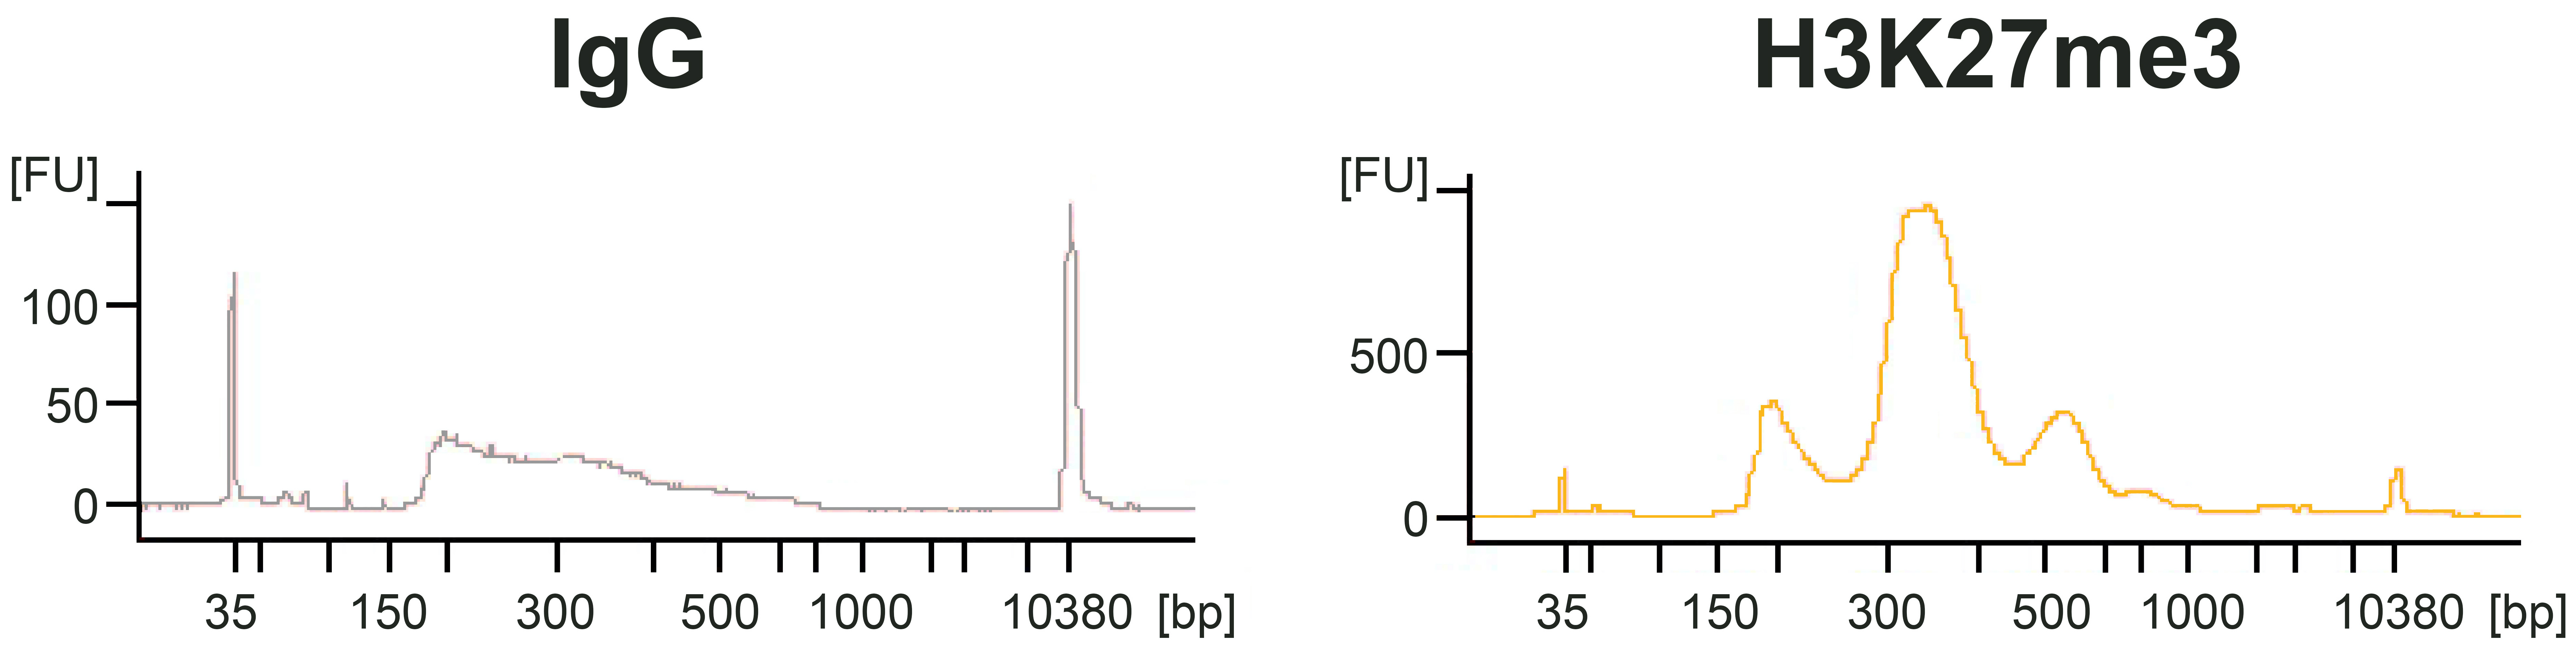 15-1117 Size Distribution of Released Chromatin